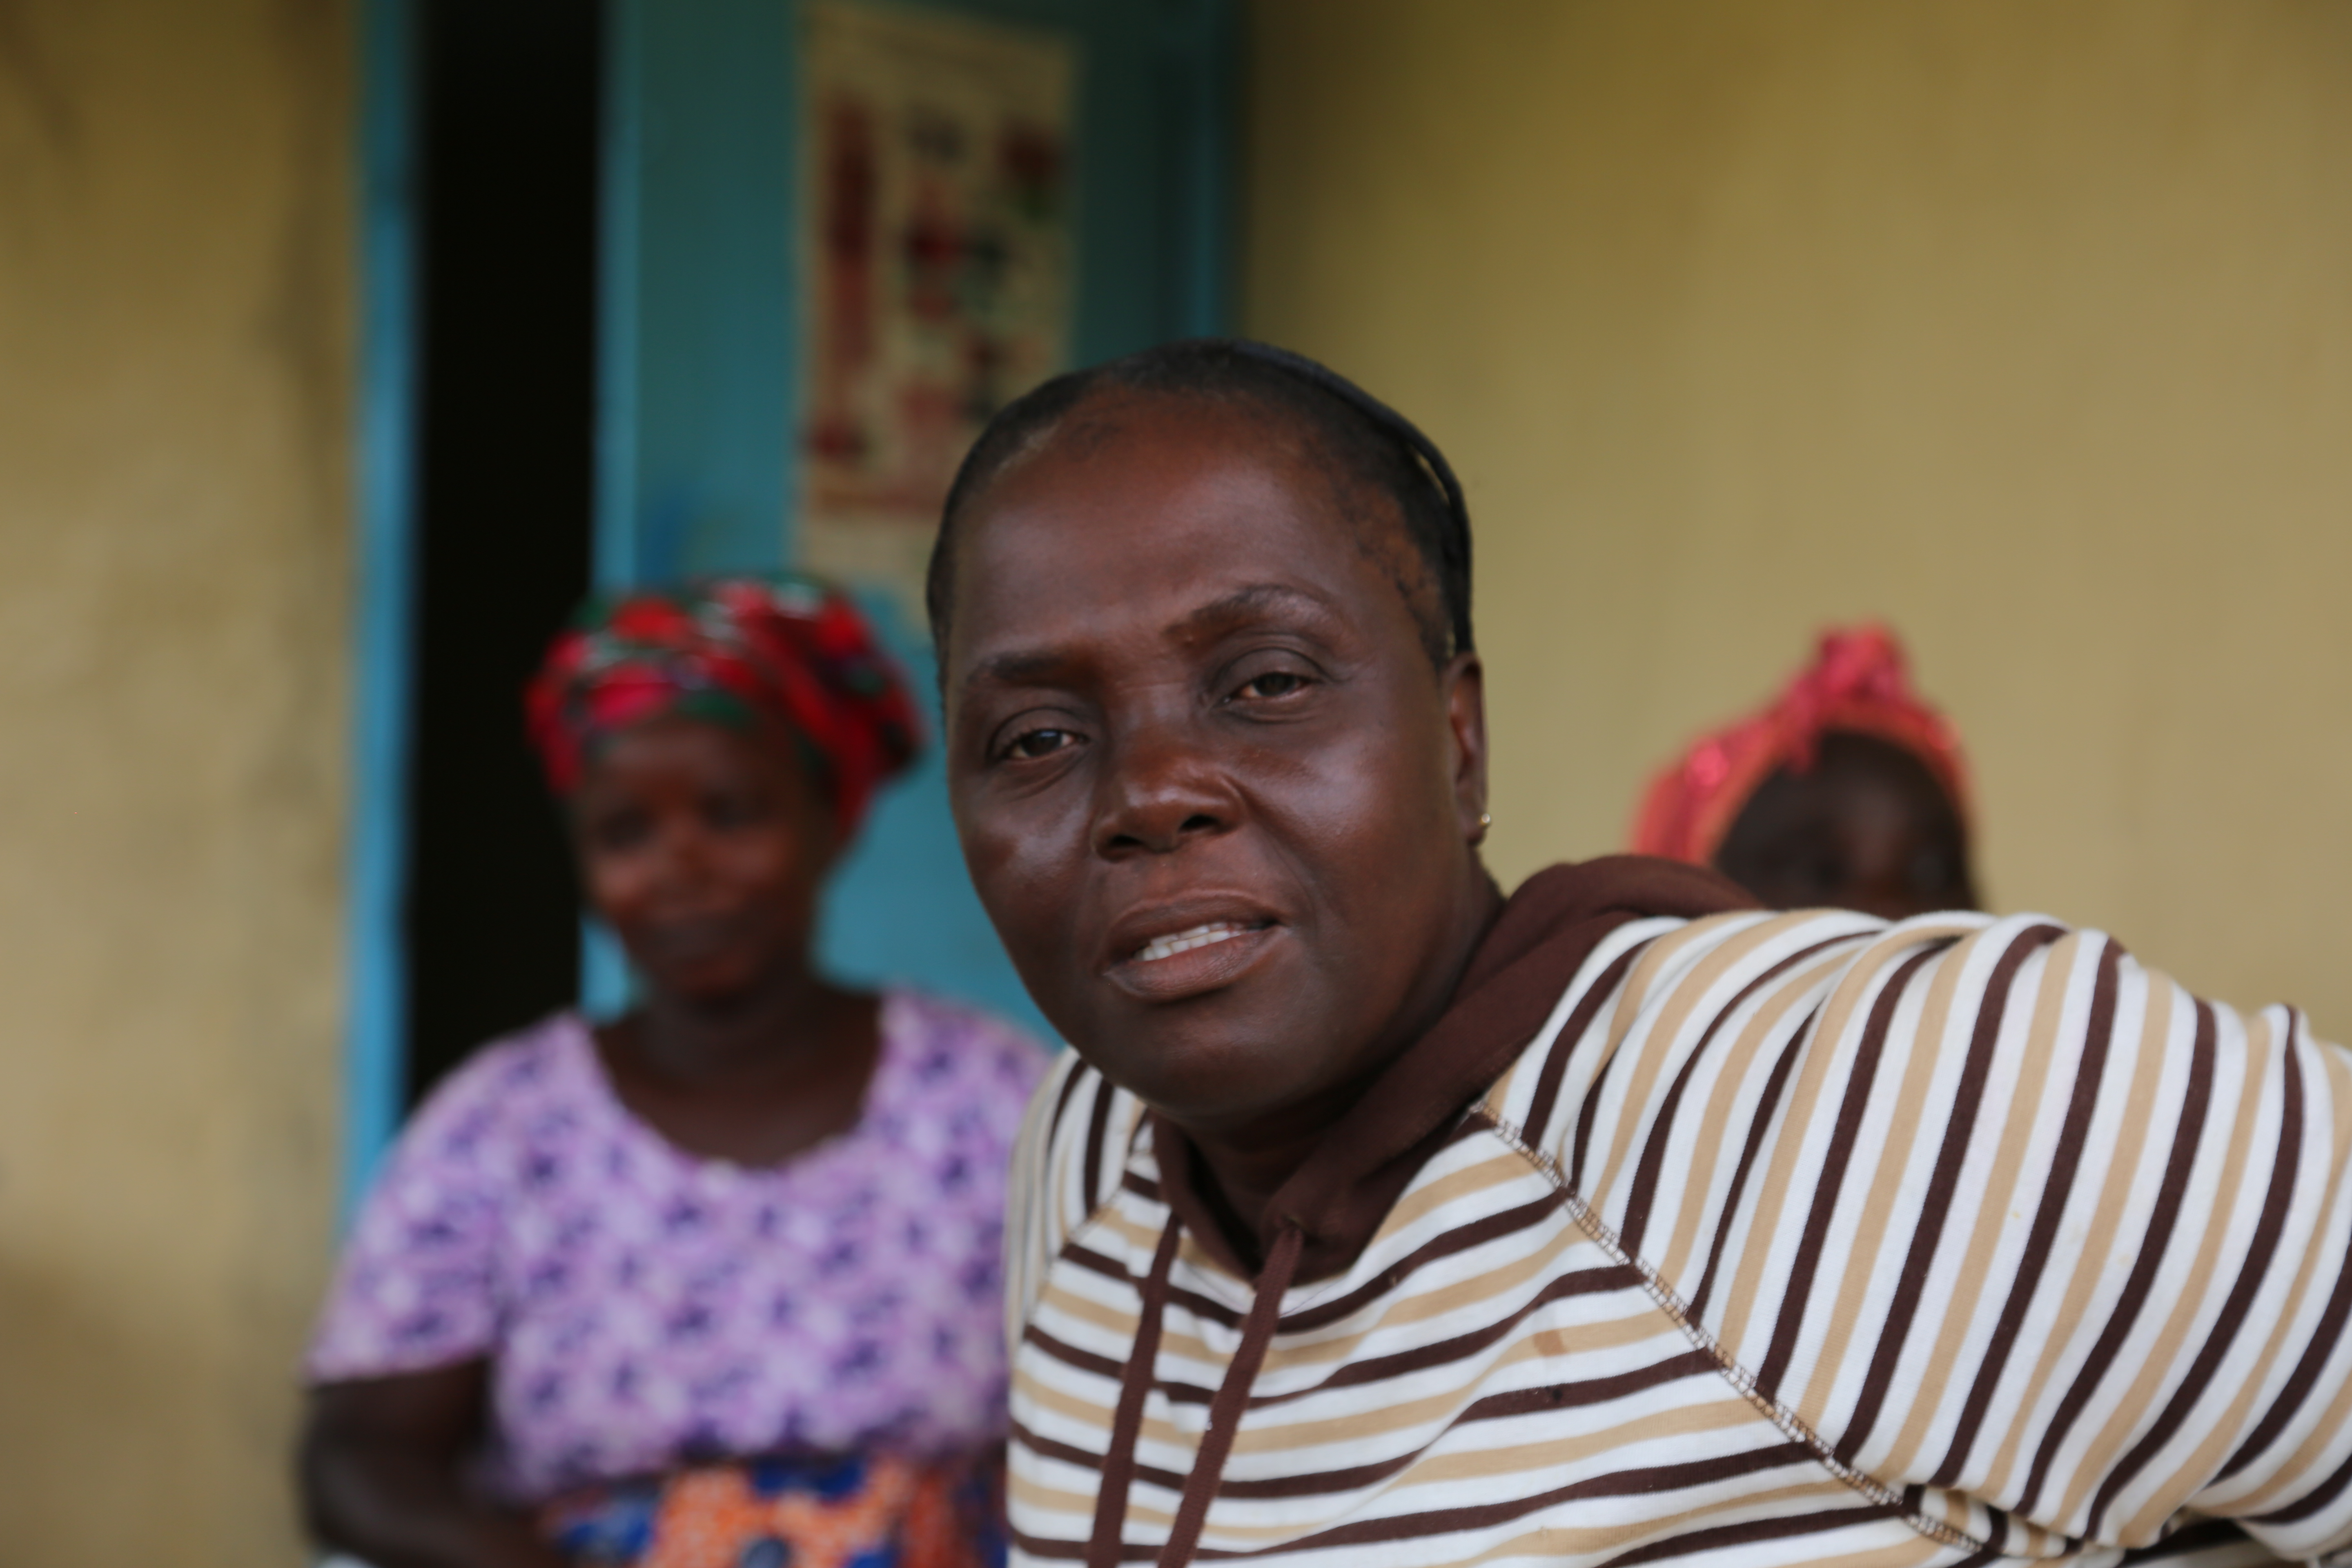 Rural women lead the way in addressing food insecurity in Liberia